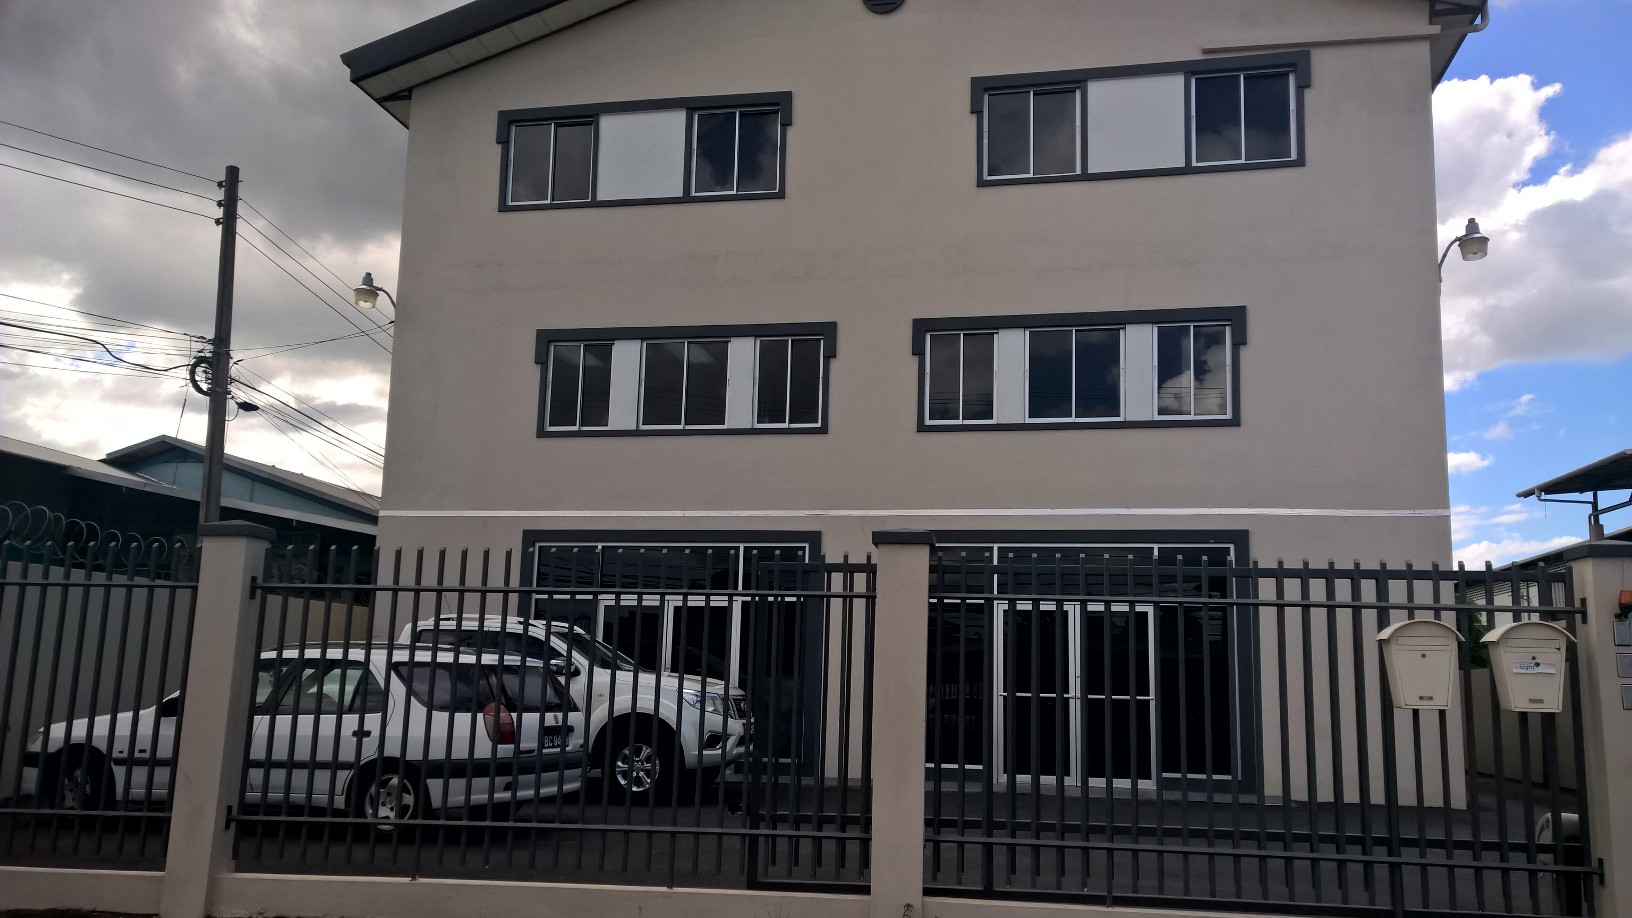 EL SOCORRO SOUTH OFFICE SPACE FOR RENT